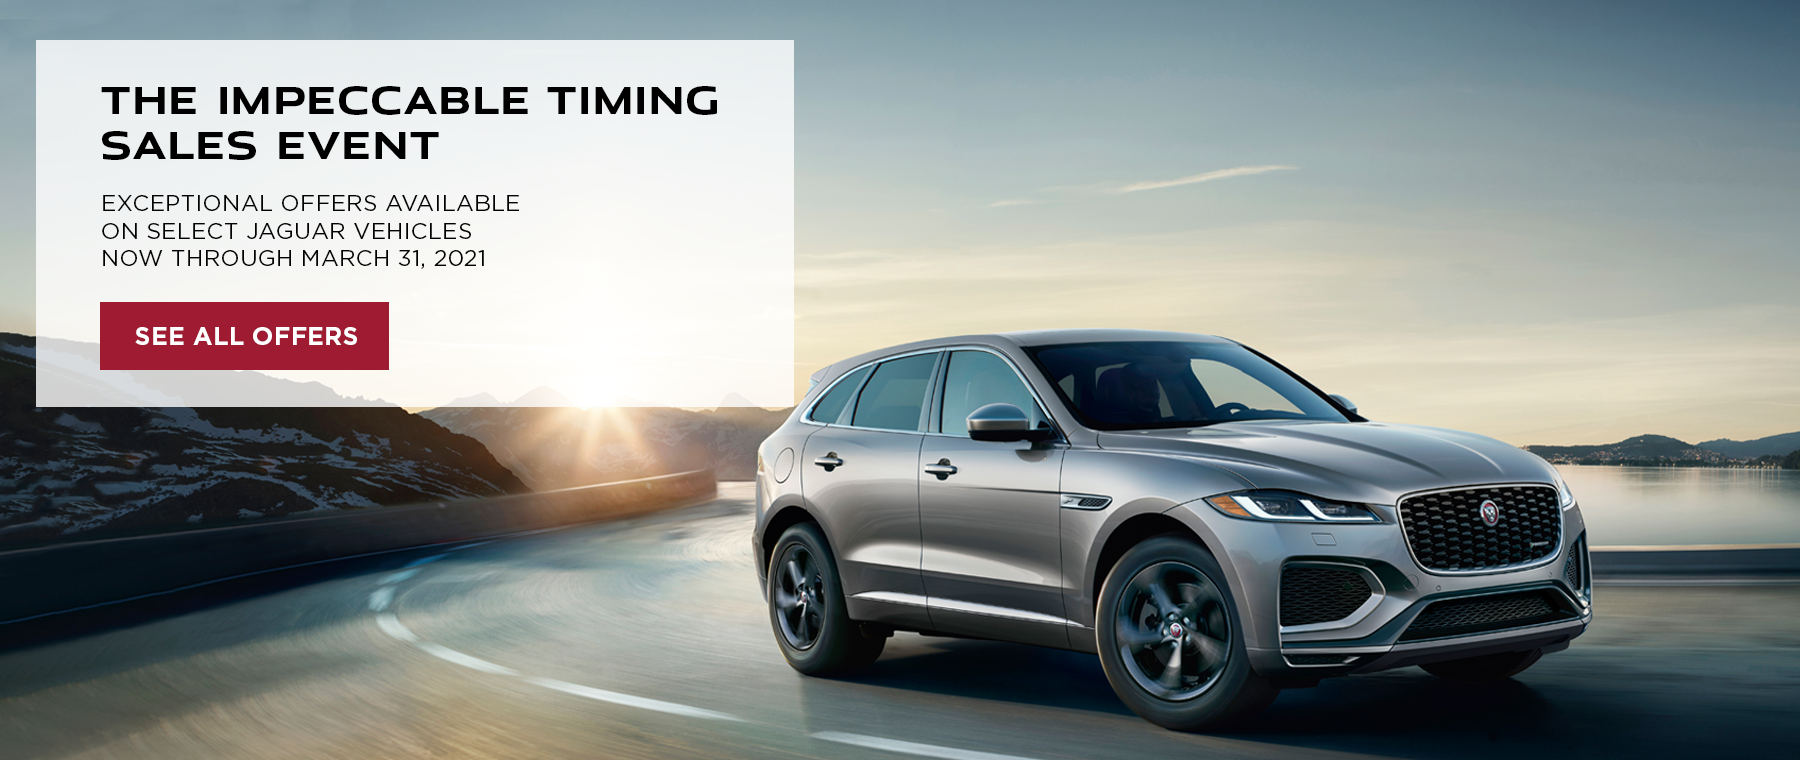 Impeccable Timing Sales Event